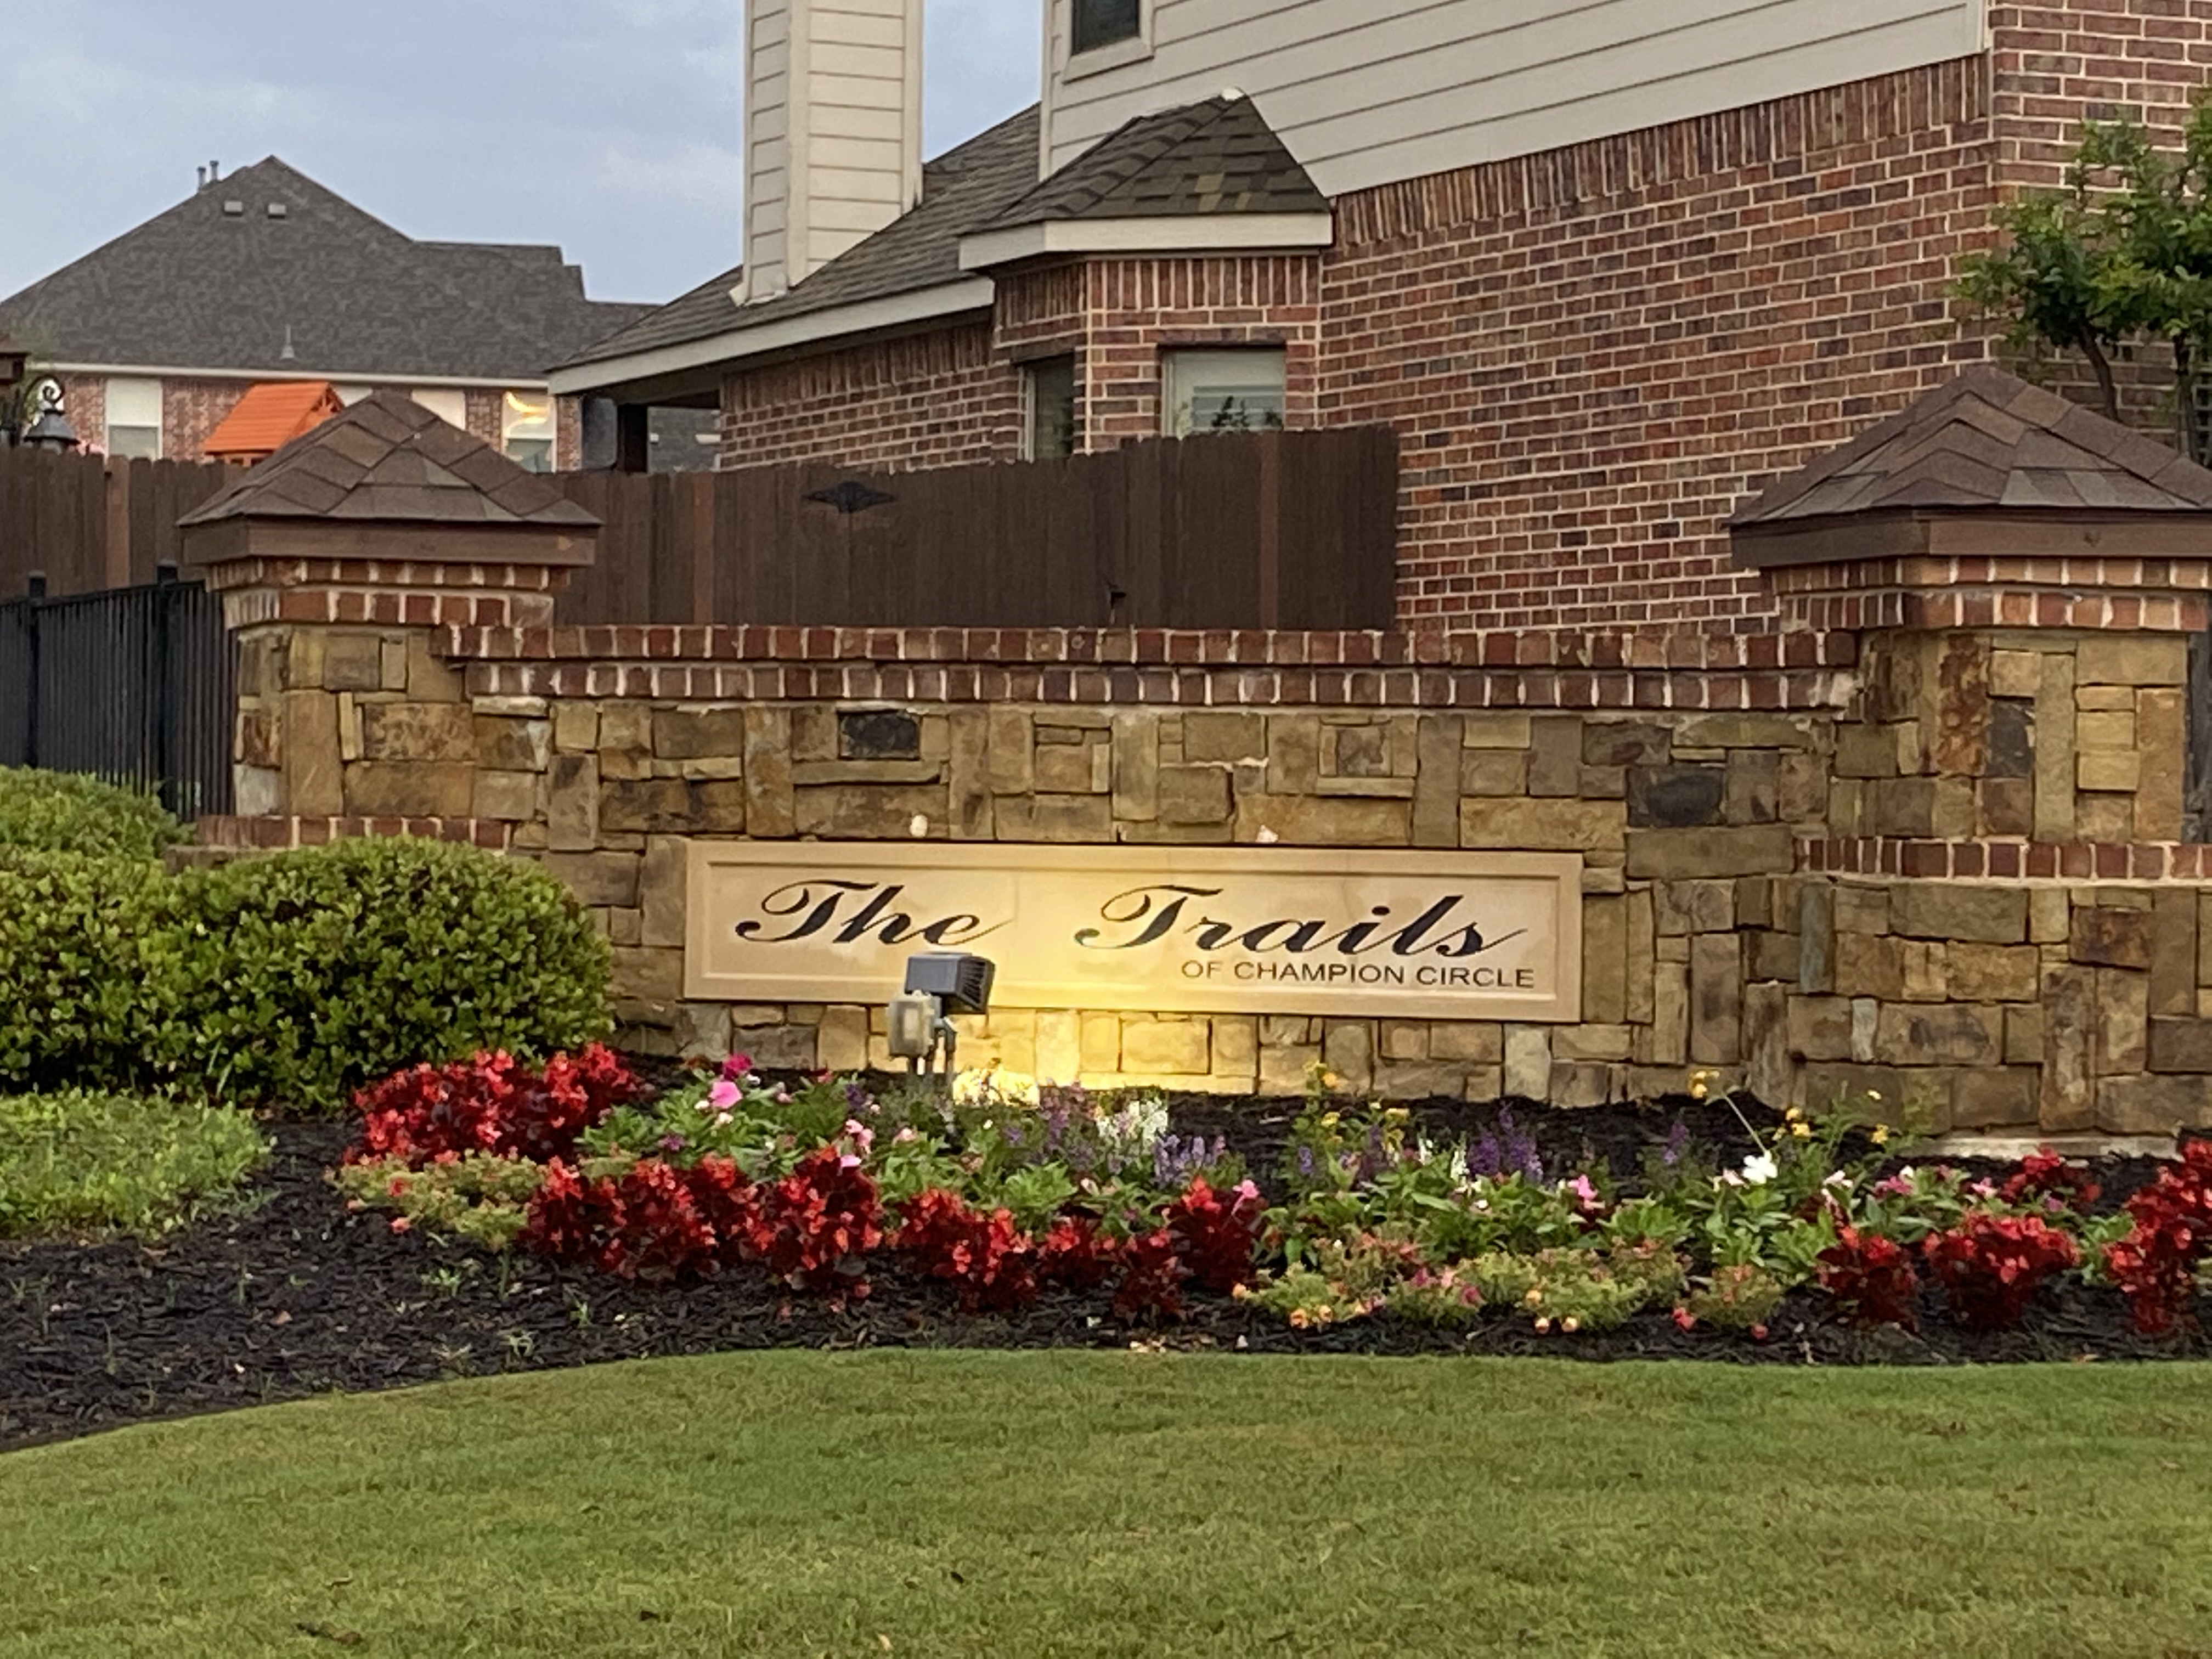 Fairways Of Champions Circle Homes for Sale